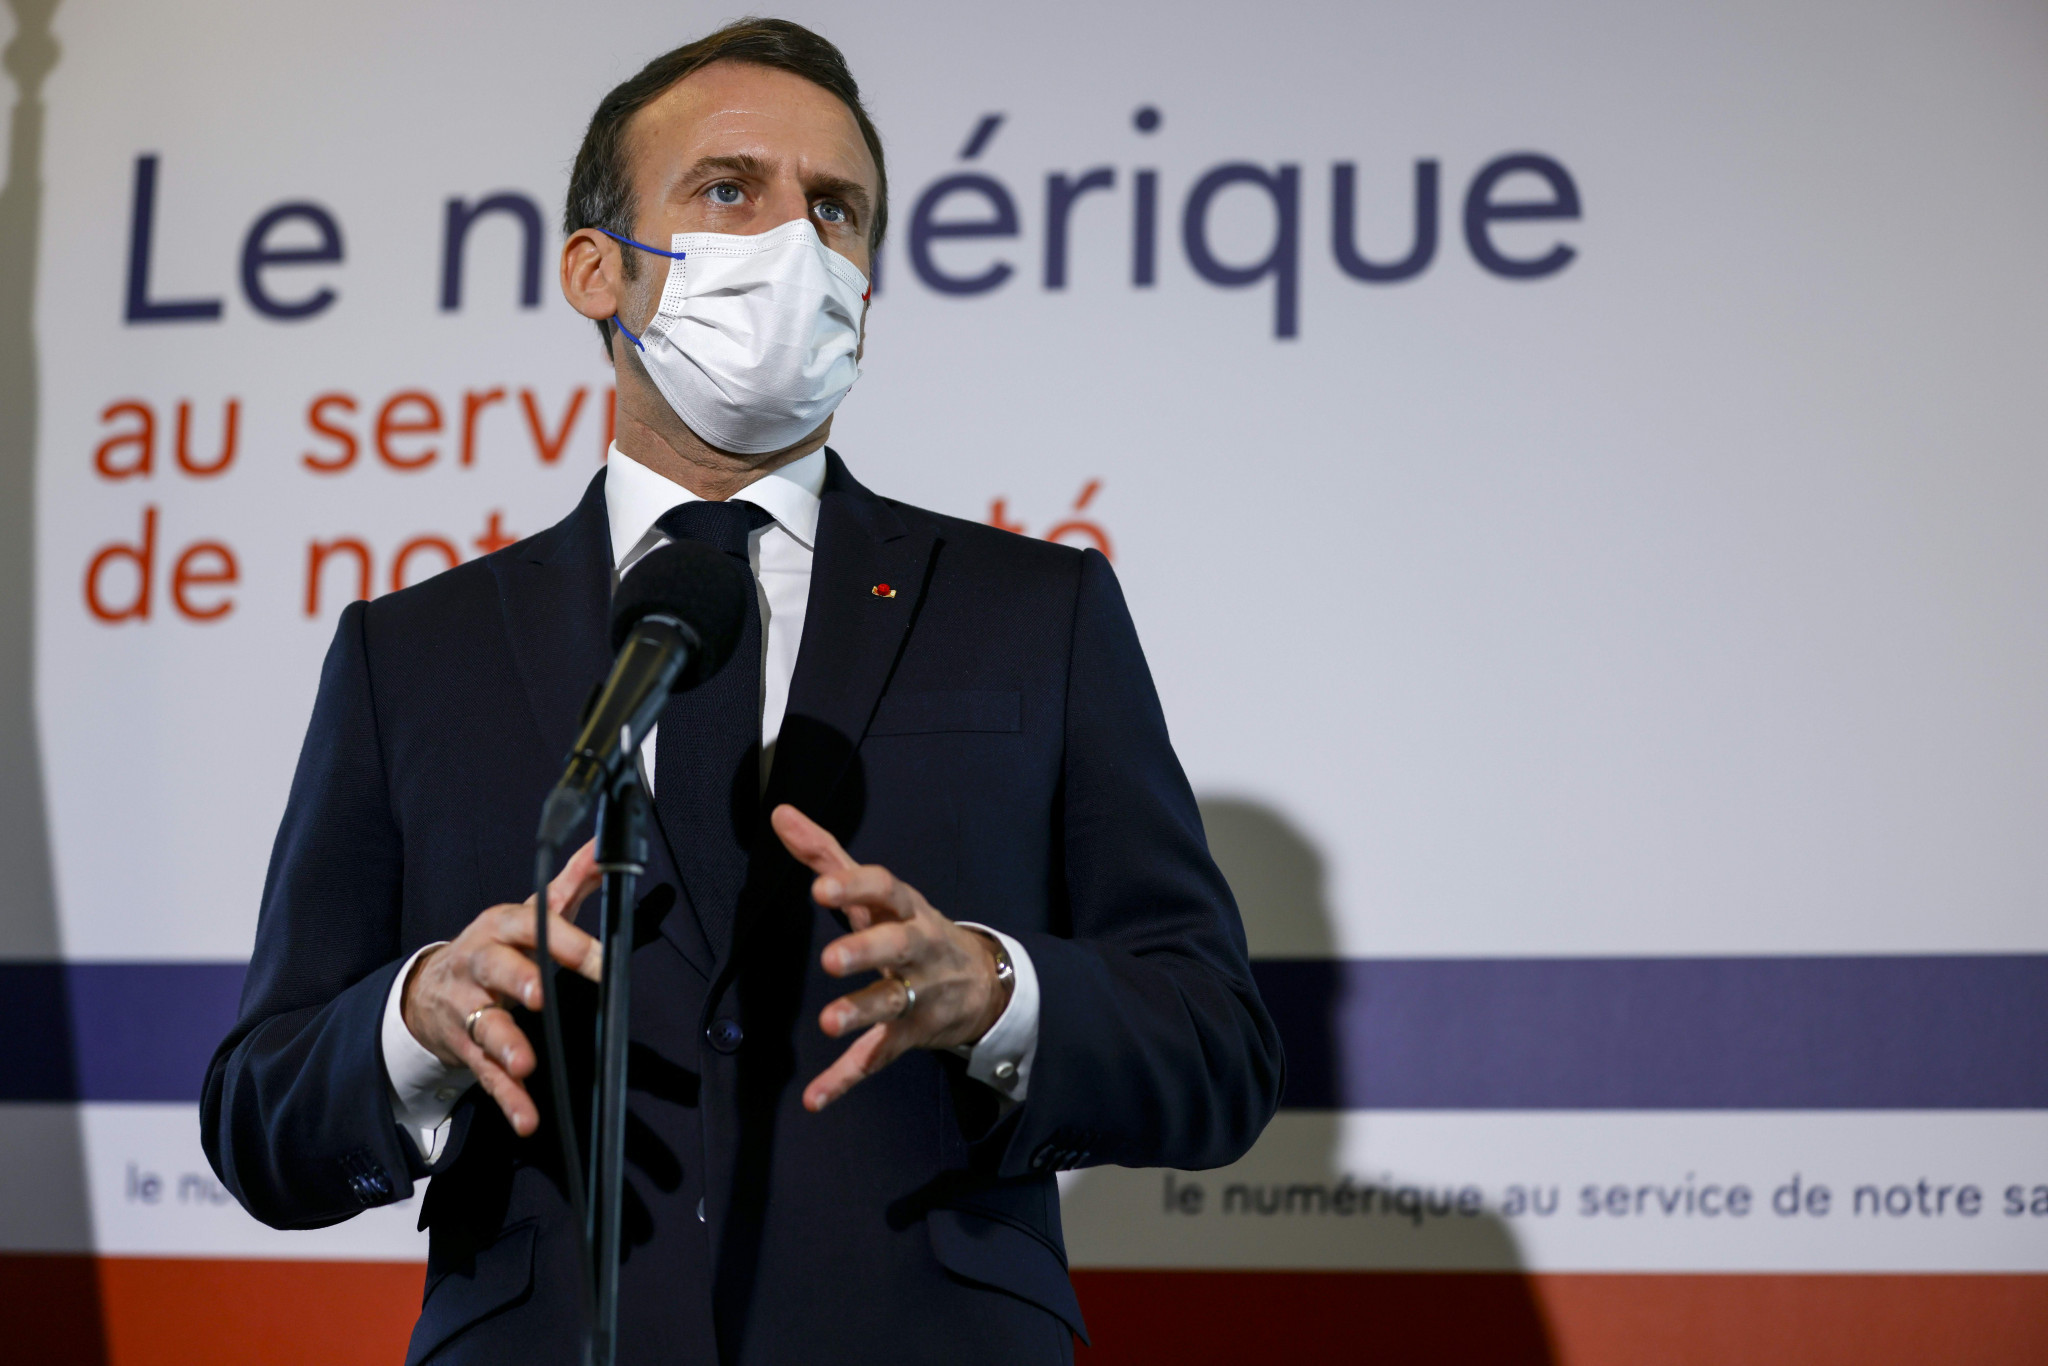 French President Emmanuel Macron is self-isolating after testing positive for COVID-19 as many countries in Europe struggle to contain the virus ©Getty Images